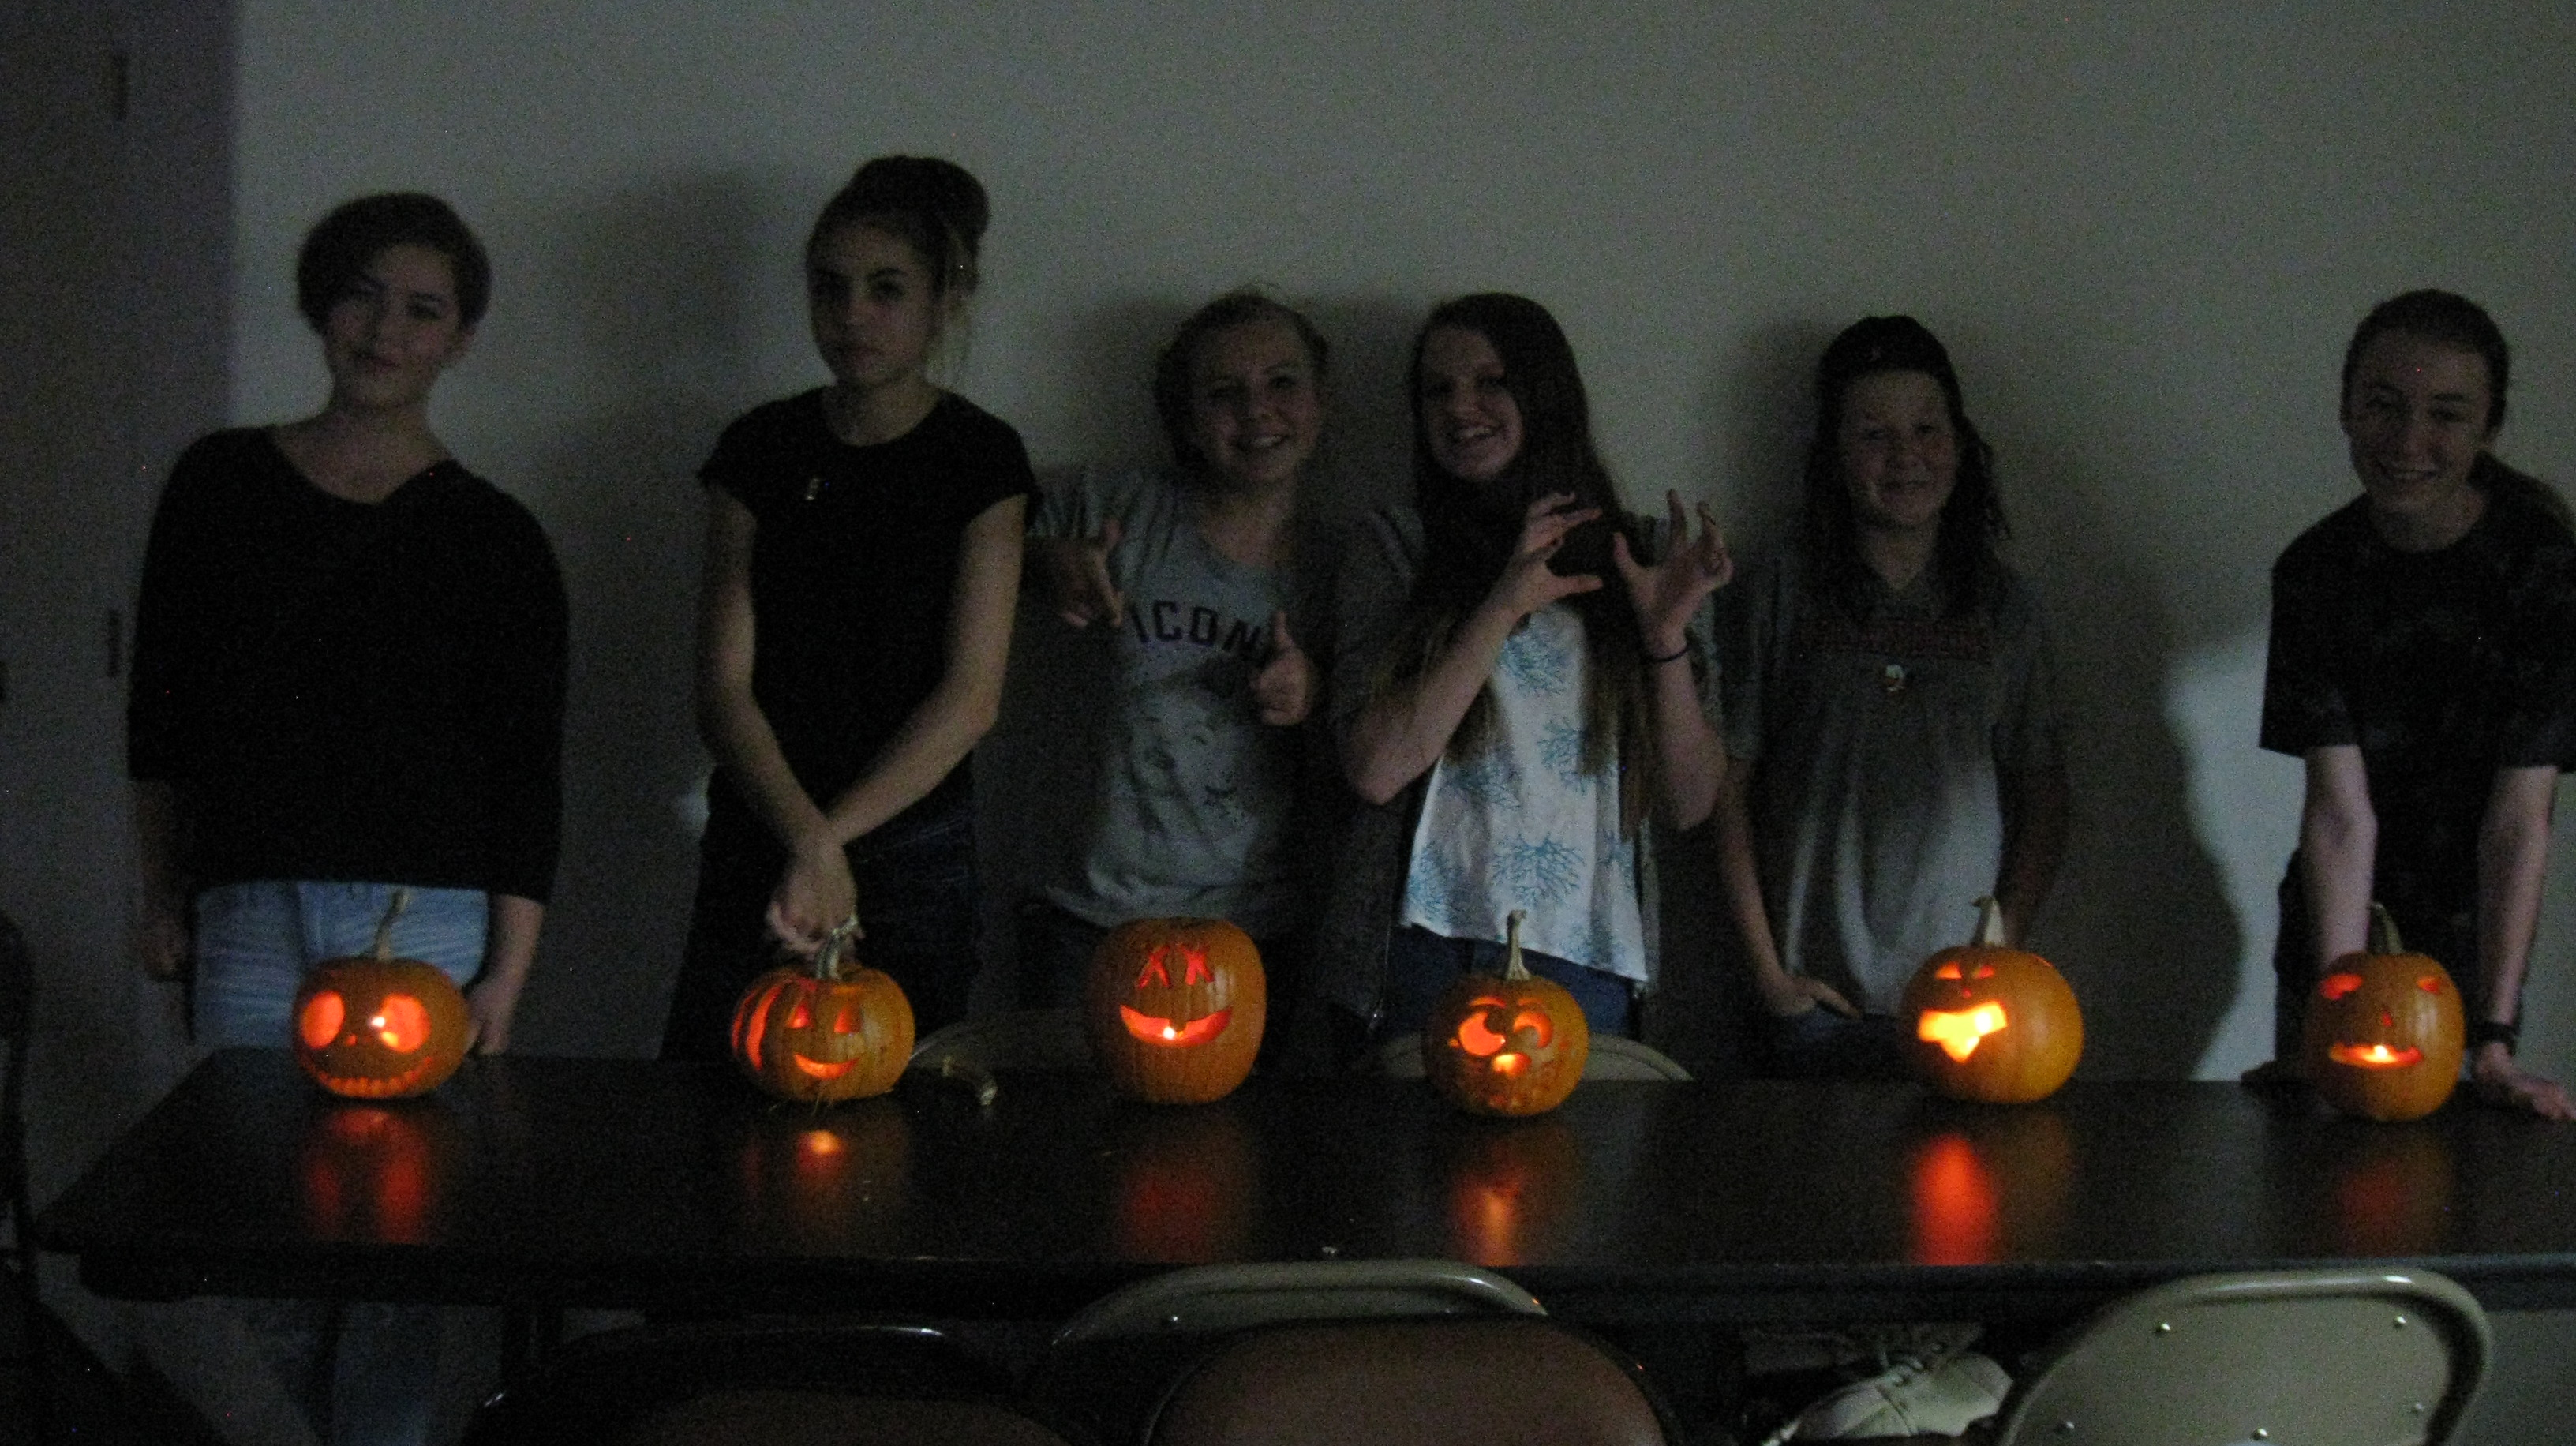 Six youth with jack-o-lanterns